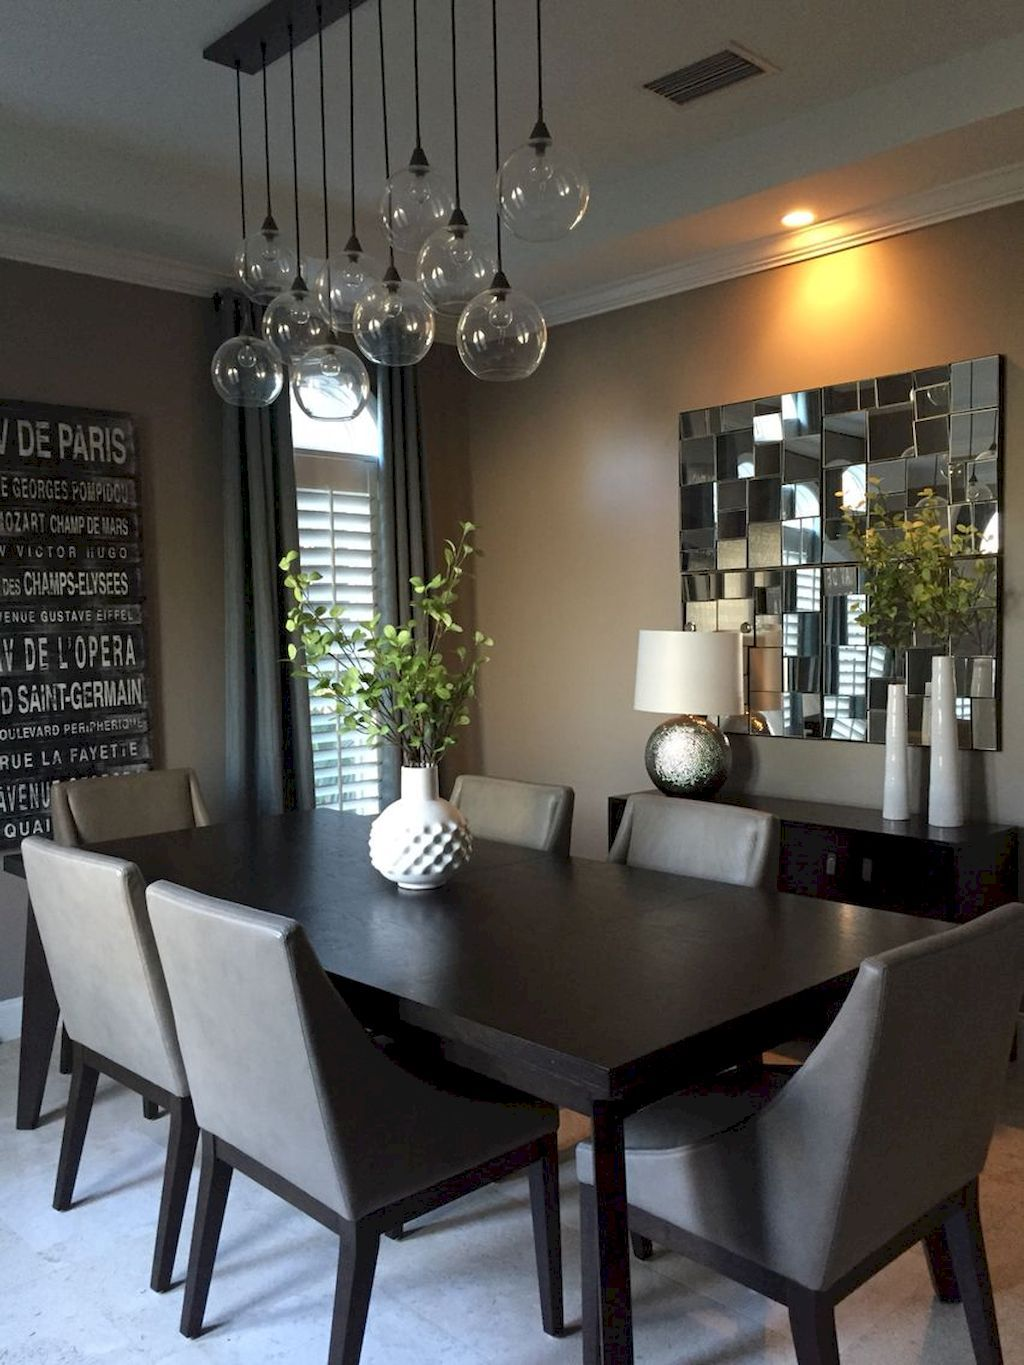 Pin by Home Design Ideas on Dining Room Ideas in 2019